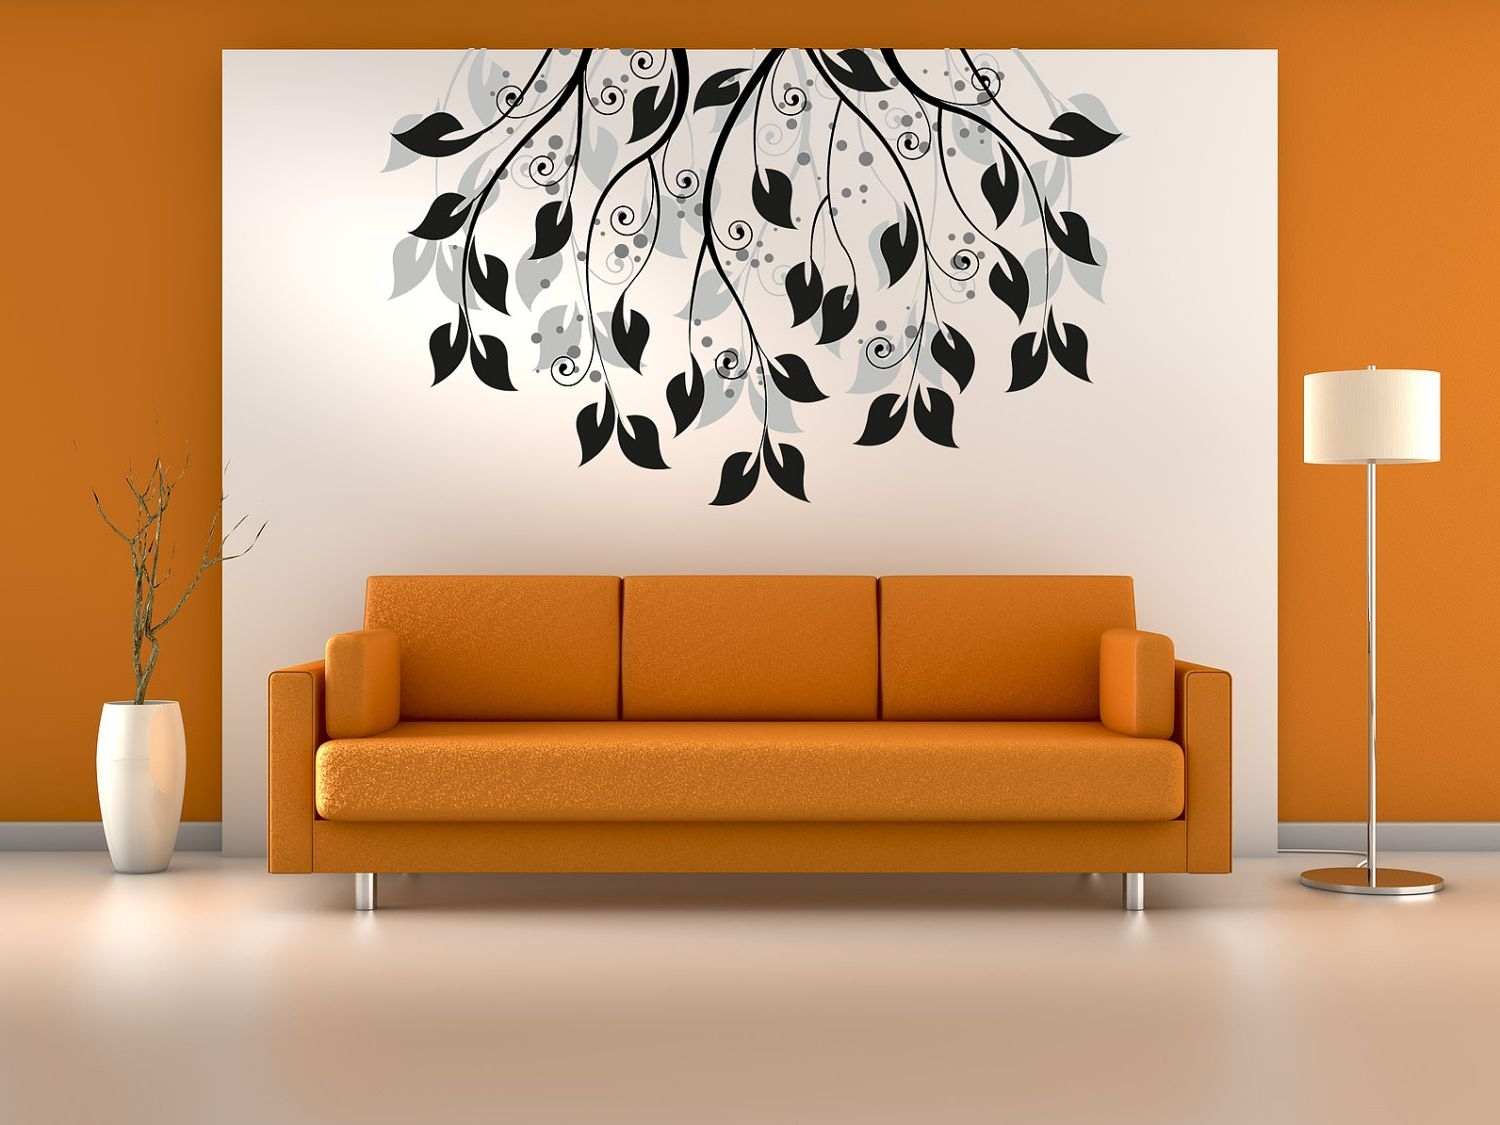 Living Room : Creative Painting Ideas For Walls With White Wall throughout 2018 Art For Walls